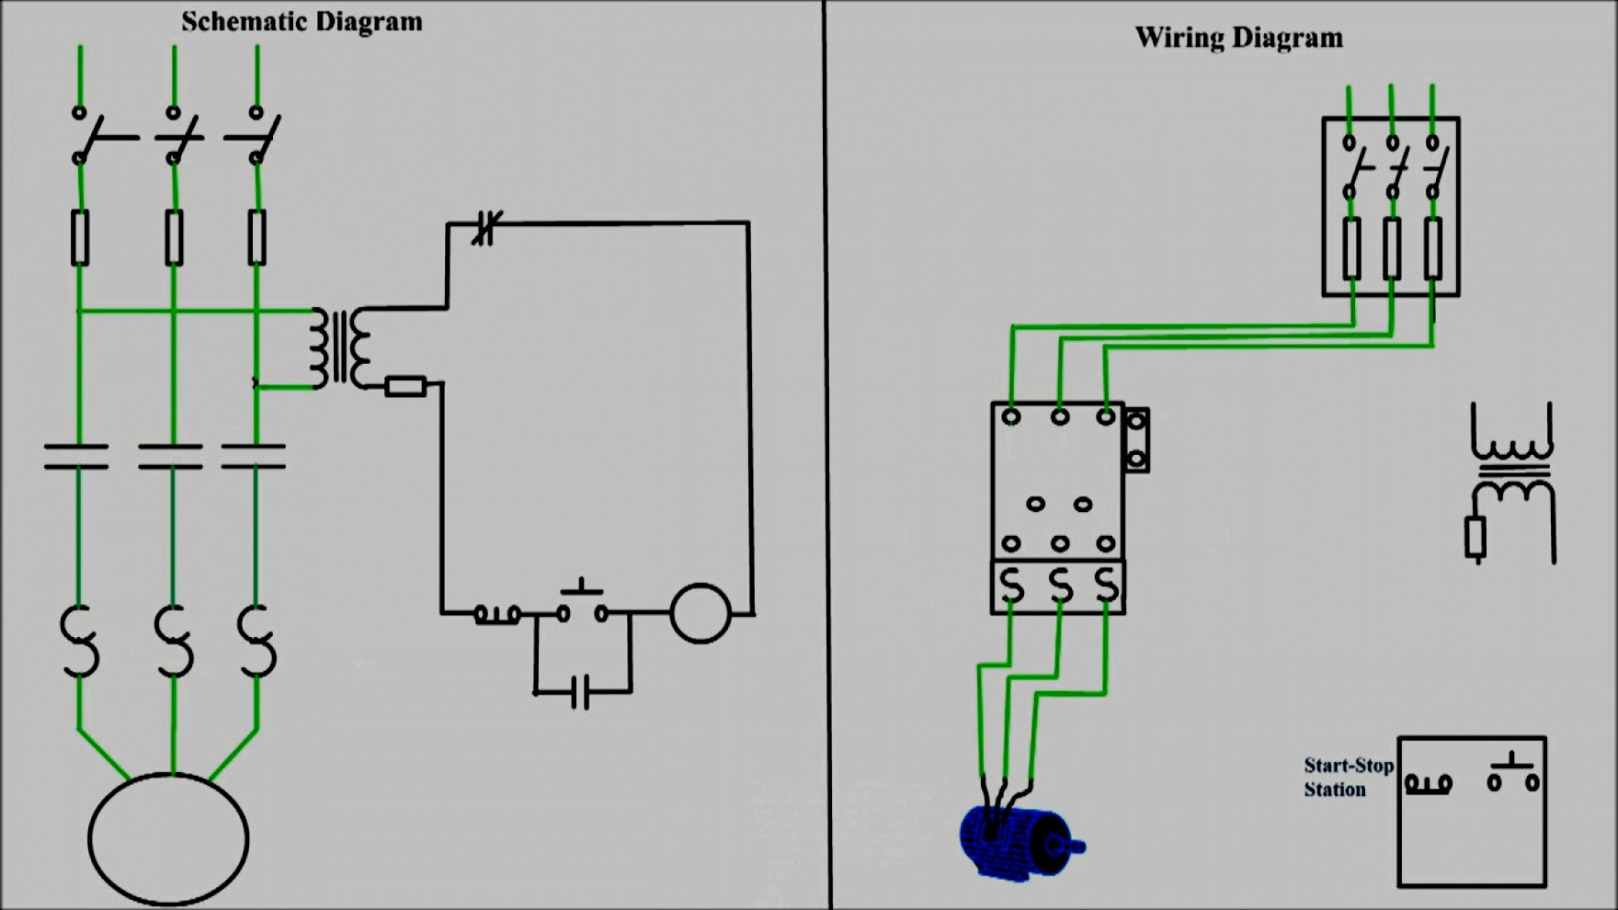 New Of Push Button Start Wiring Diagram Multiple Stations Three Wire - Motor Starter Wiring Diagram Start Stop